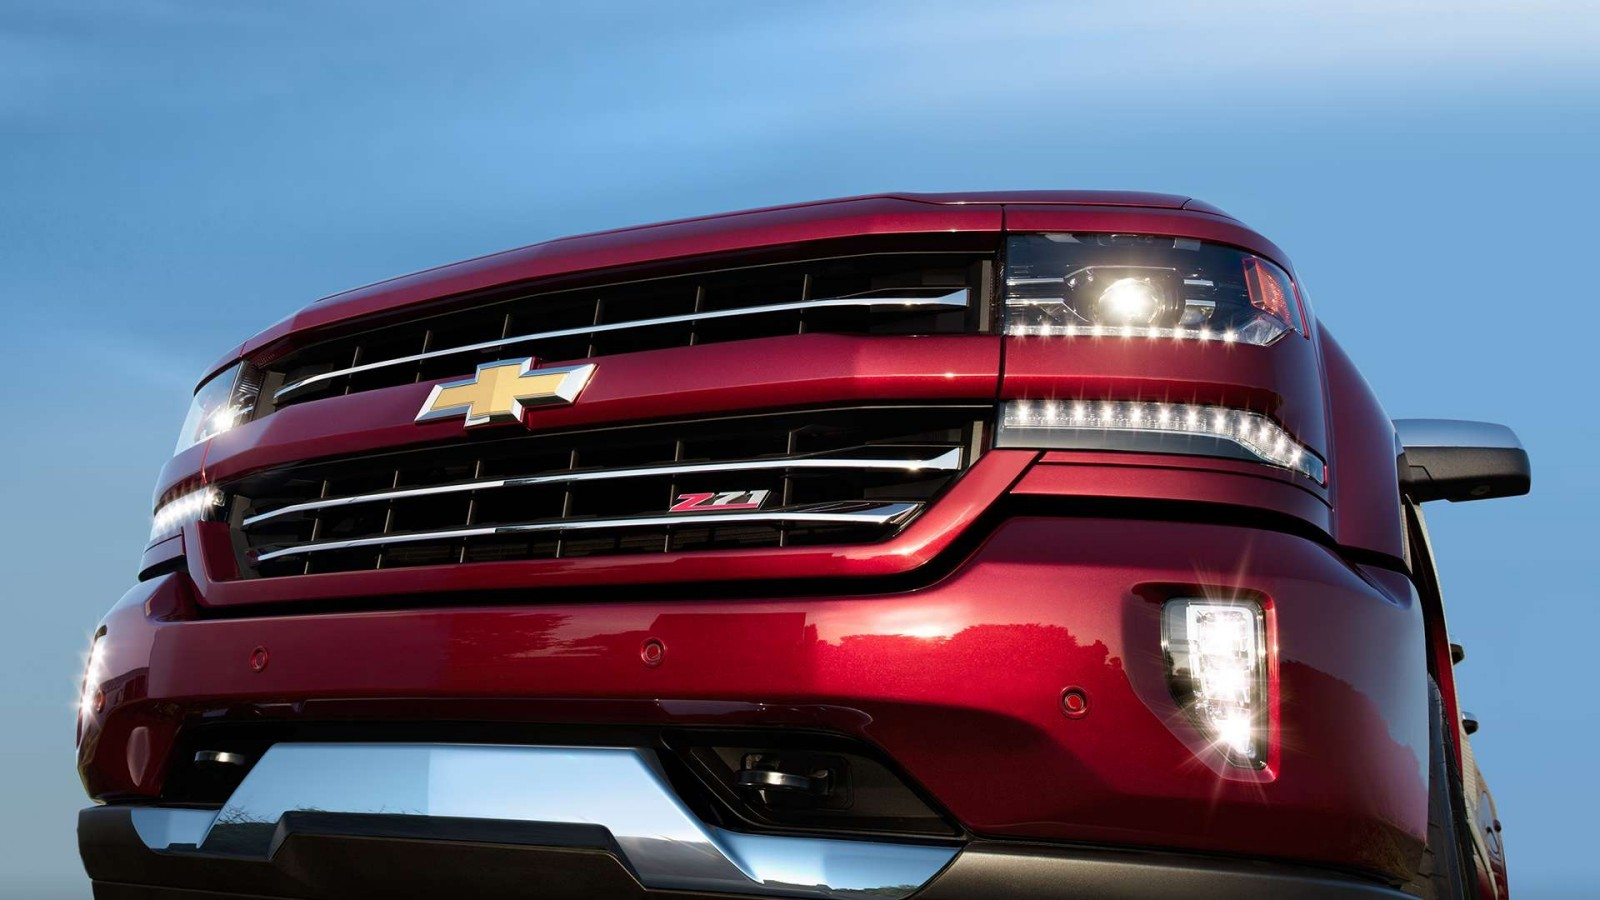 New Chevrolet Vehicles for Sale in Virginia - Pohanka Automotive Group